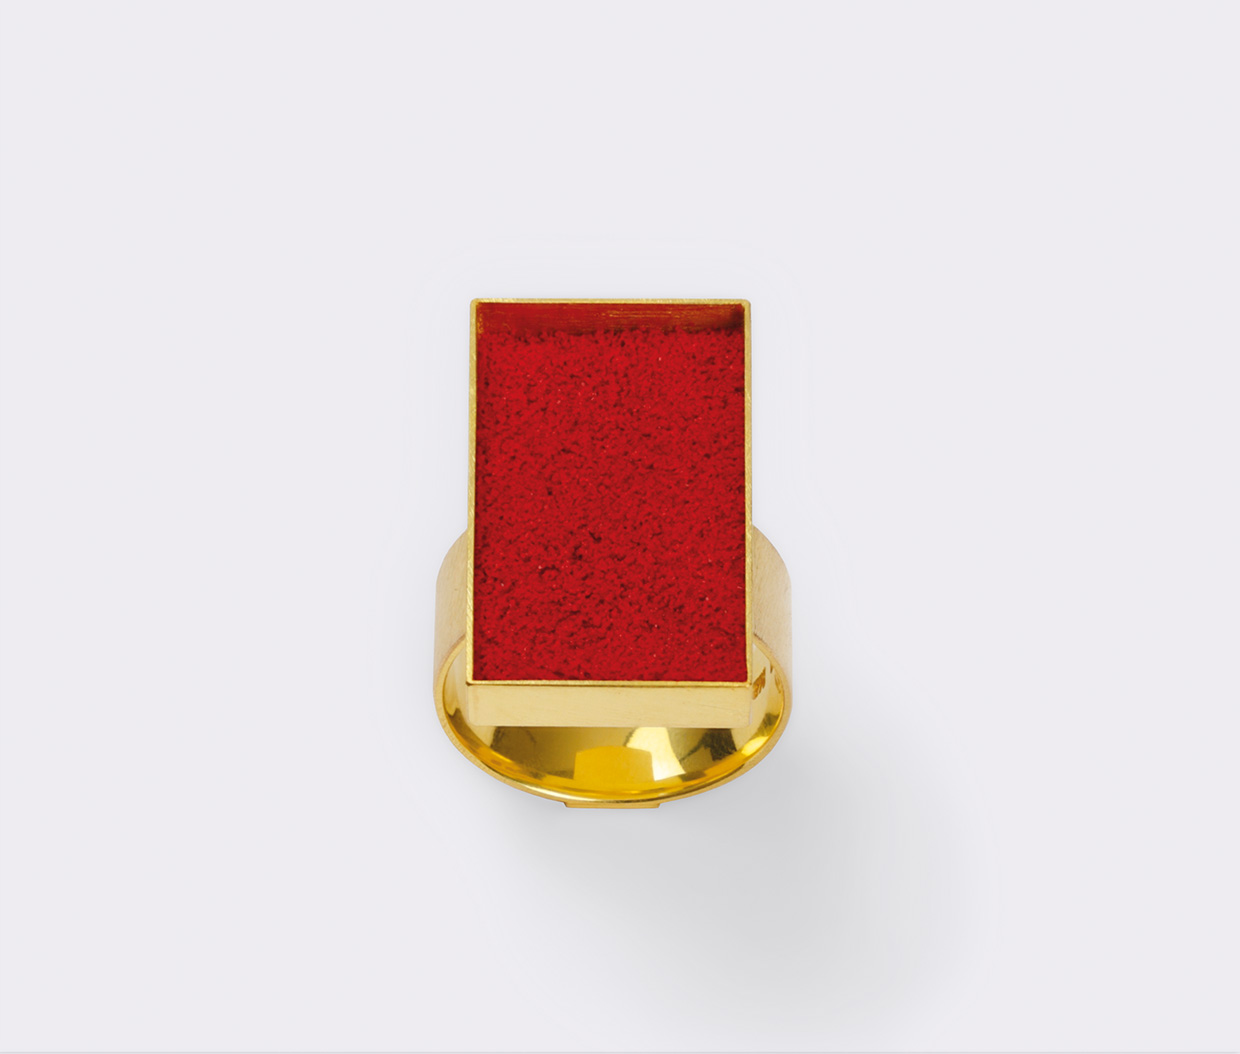 Ring  2011  Gold  750  rotes  Farbpigment  15x22  mm